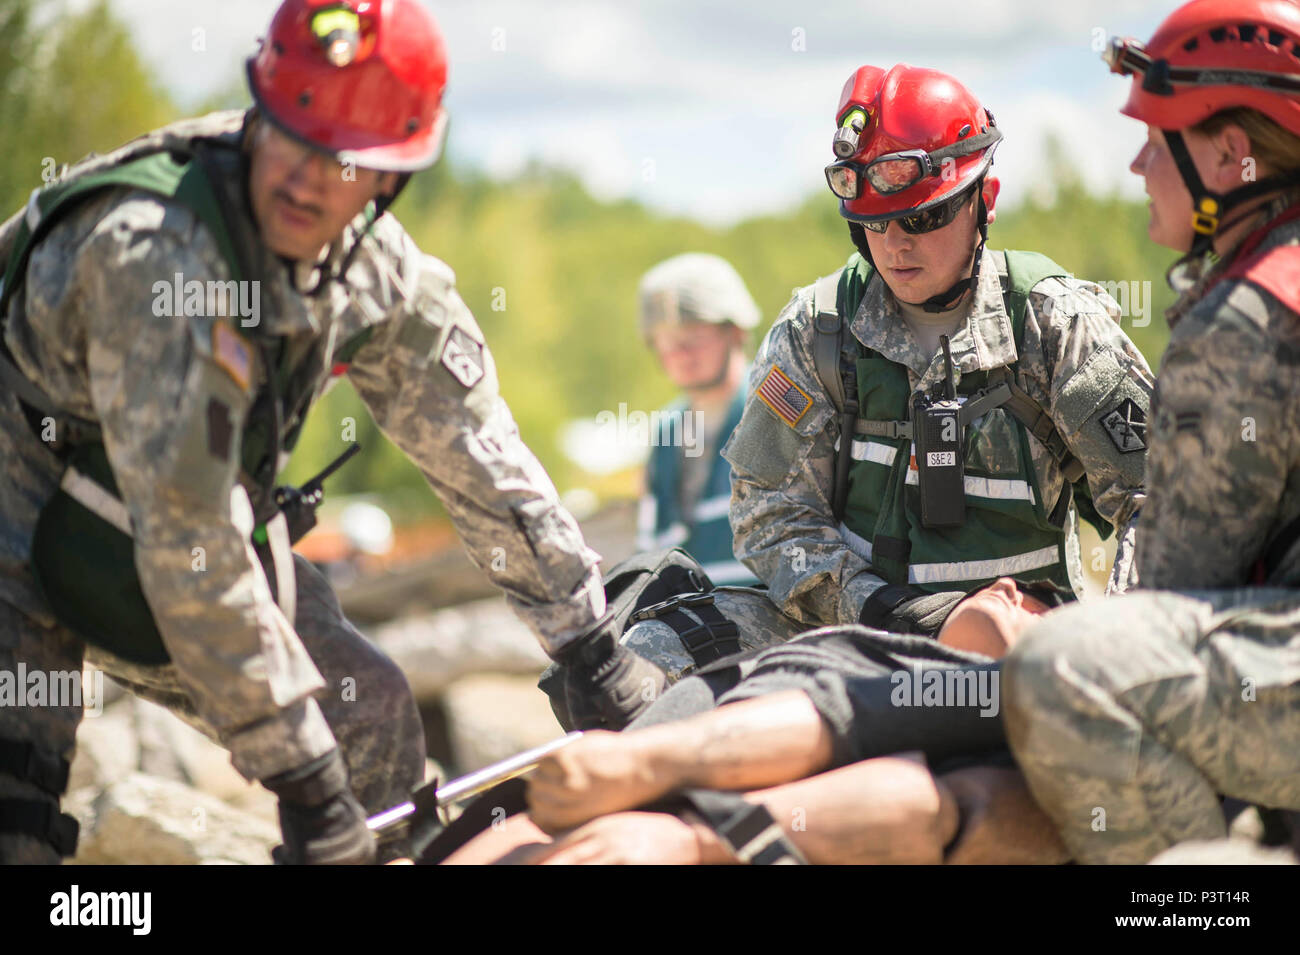 Multiple units from the Army and Air National guard work to clear through the rubble to rescue victims during a training scenario during Vigilant Guard 2016 at Camp Johnson, Colchester, Vt., July 30, 2016. Vigilant Guard is a national level emergency response exercise, sponsored by the National Guard and NORTHCOM, which provides National Guard units an opportunity to improve cooperation and relationships with regional civilian, military, and federal partners in preparation for emergencies and catastrophic events. (U.S. Air National Guard Photo by Senior Airman Jonathon Alderman) Stock Photo